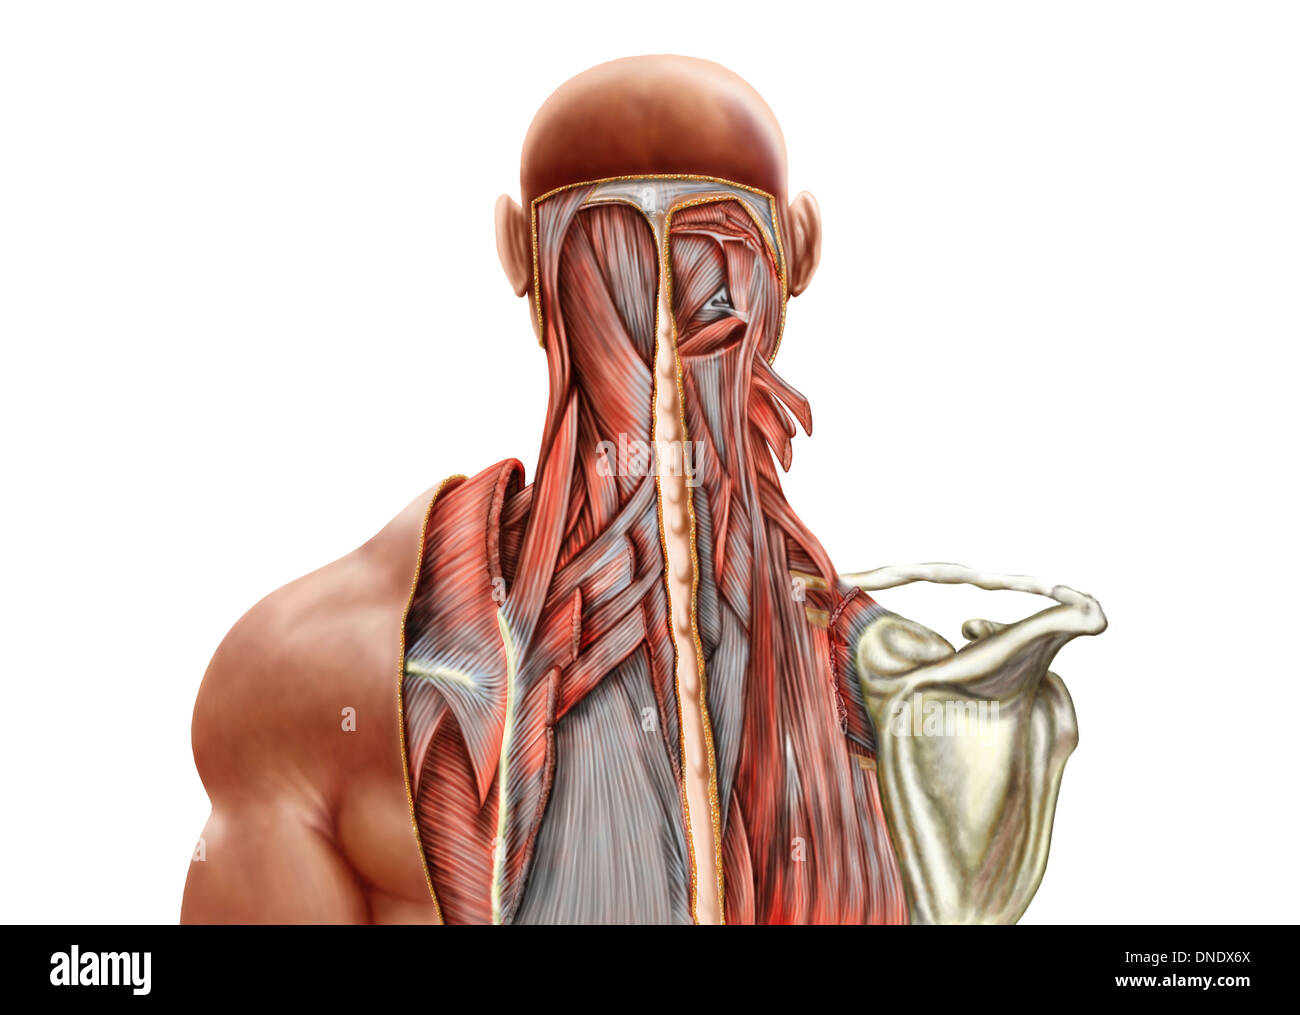 Male Upper Back Muscles Diagram Find Wiring Diagram